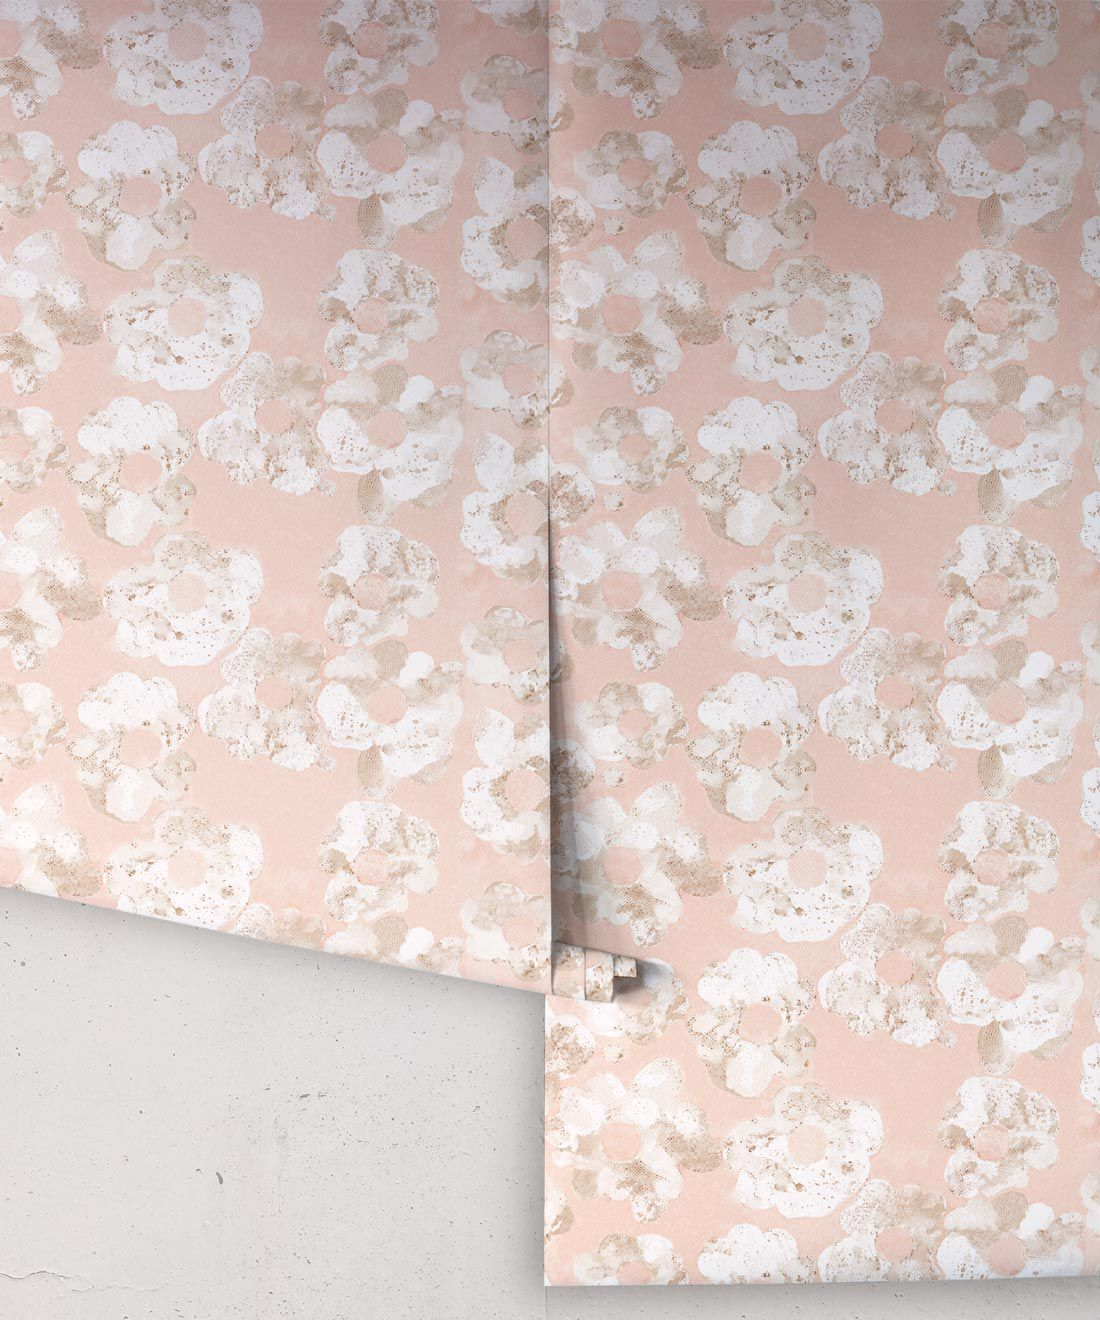 Cherry Blossom Wallpaper Blush • Shibori Floral • Rolls